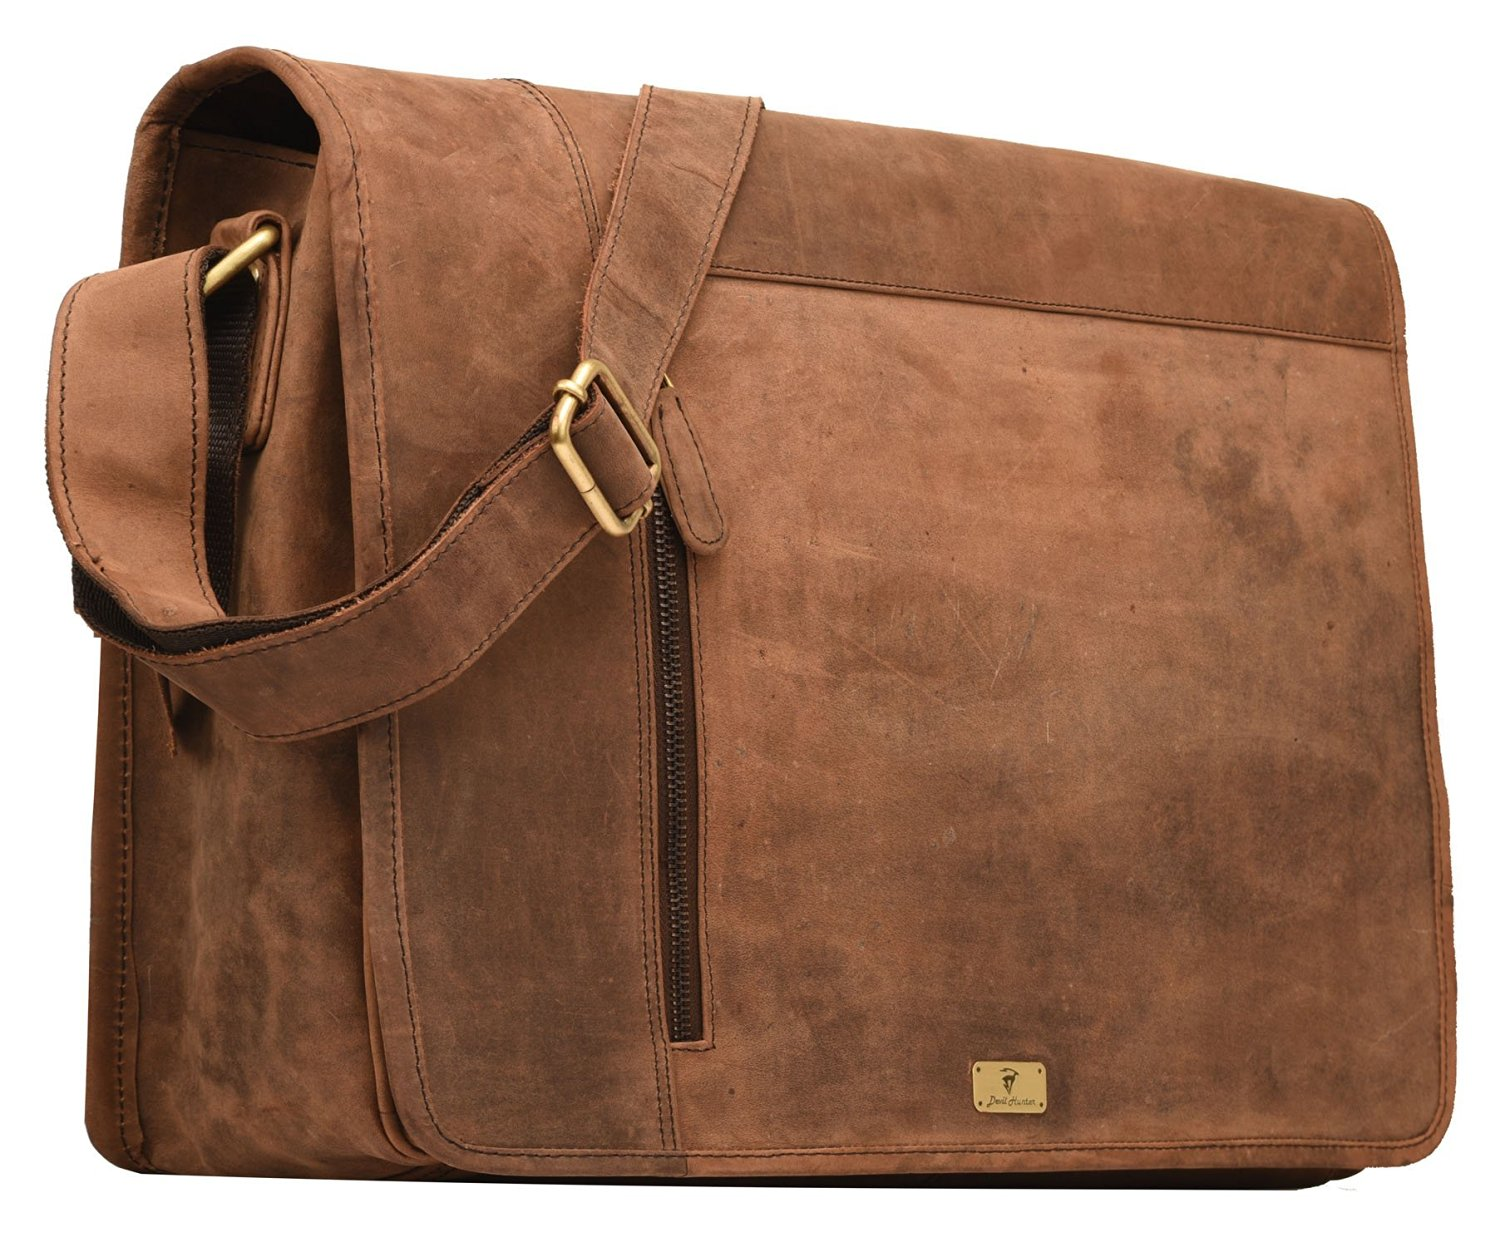 DH Valley genuine buffalo leather messenger bag in vintage style shoulder travel bag laptop bag